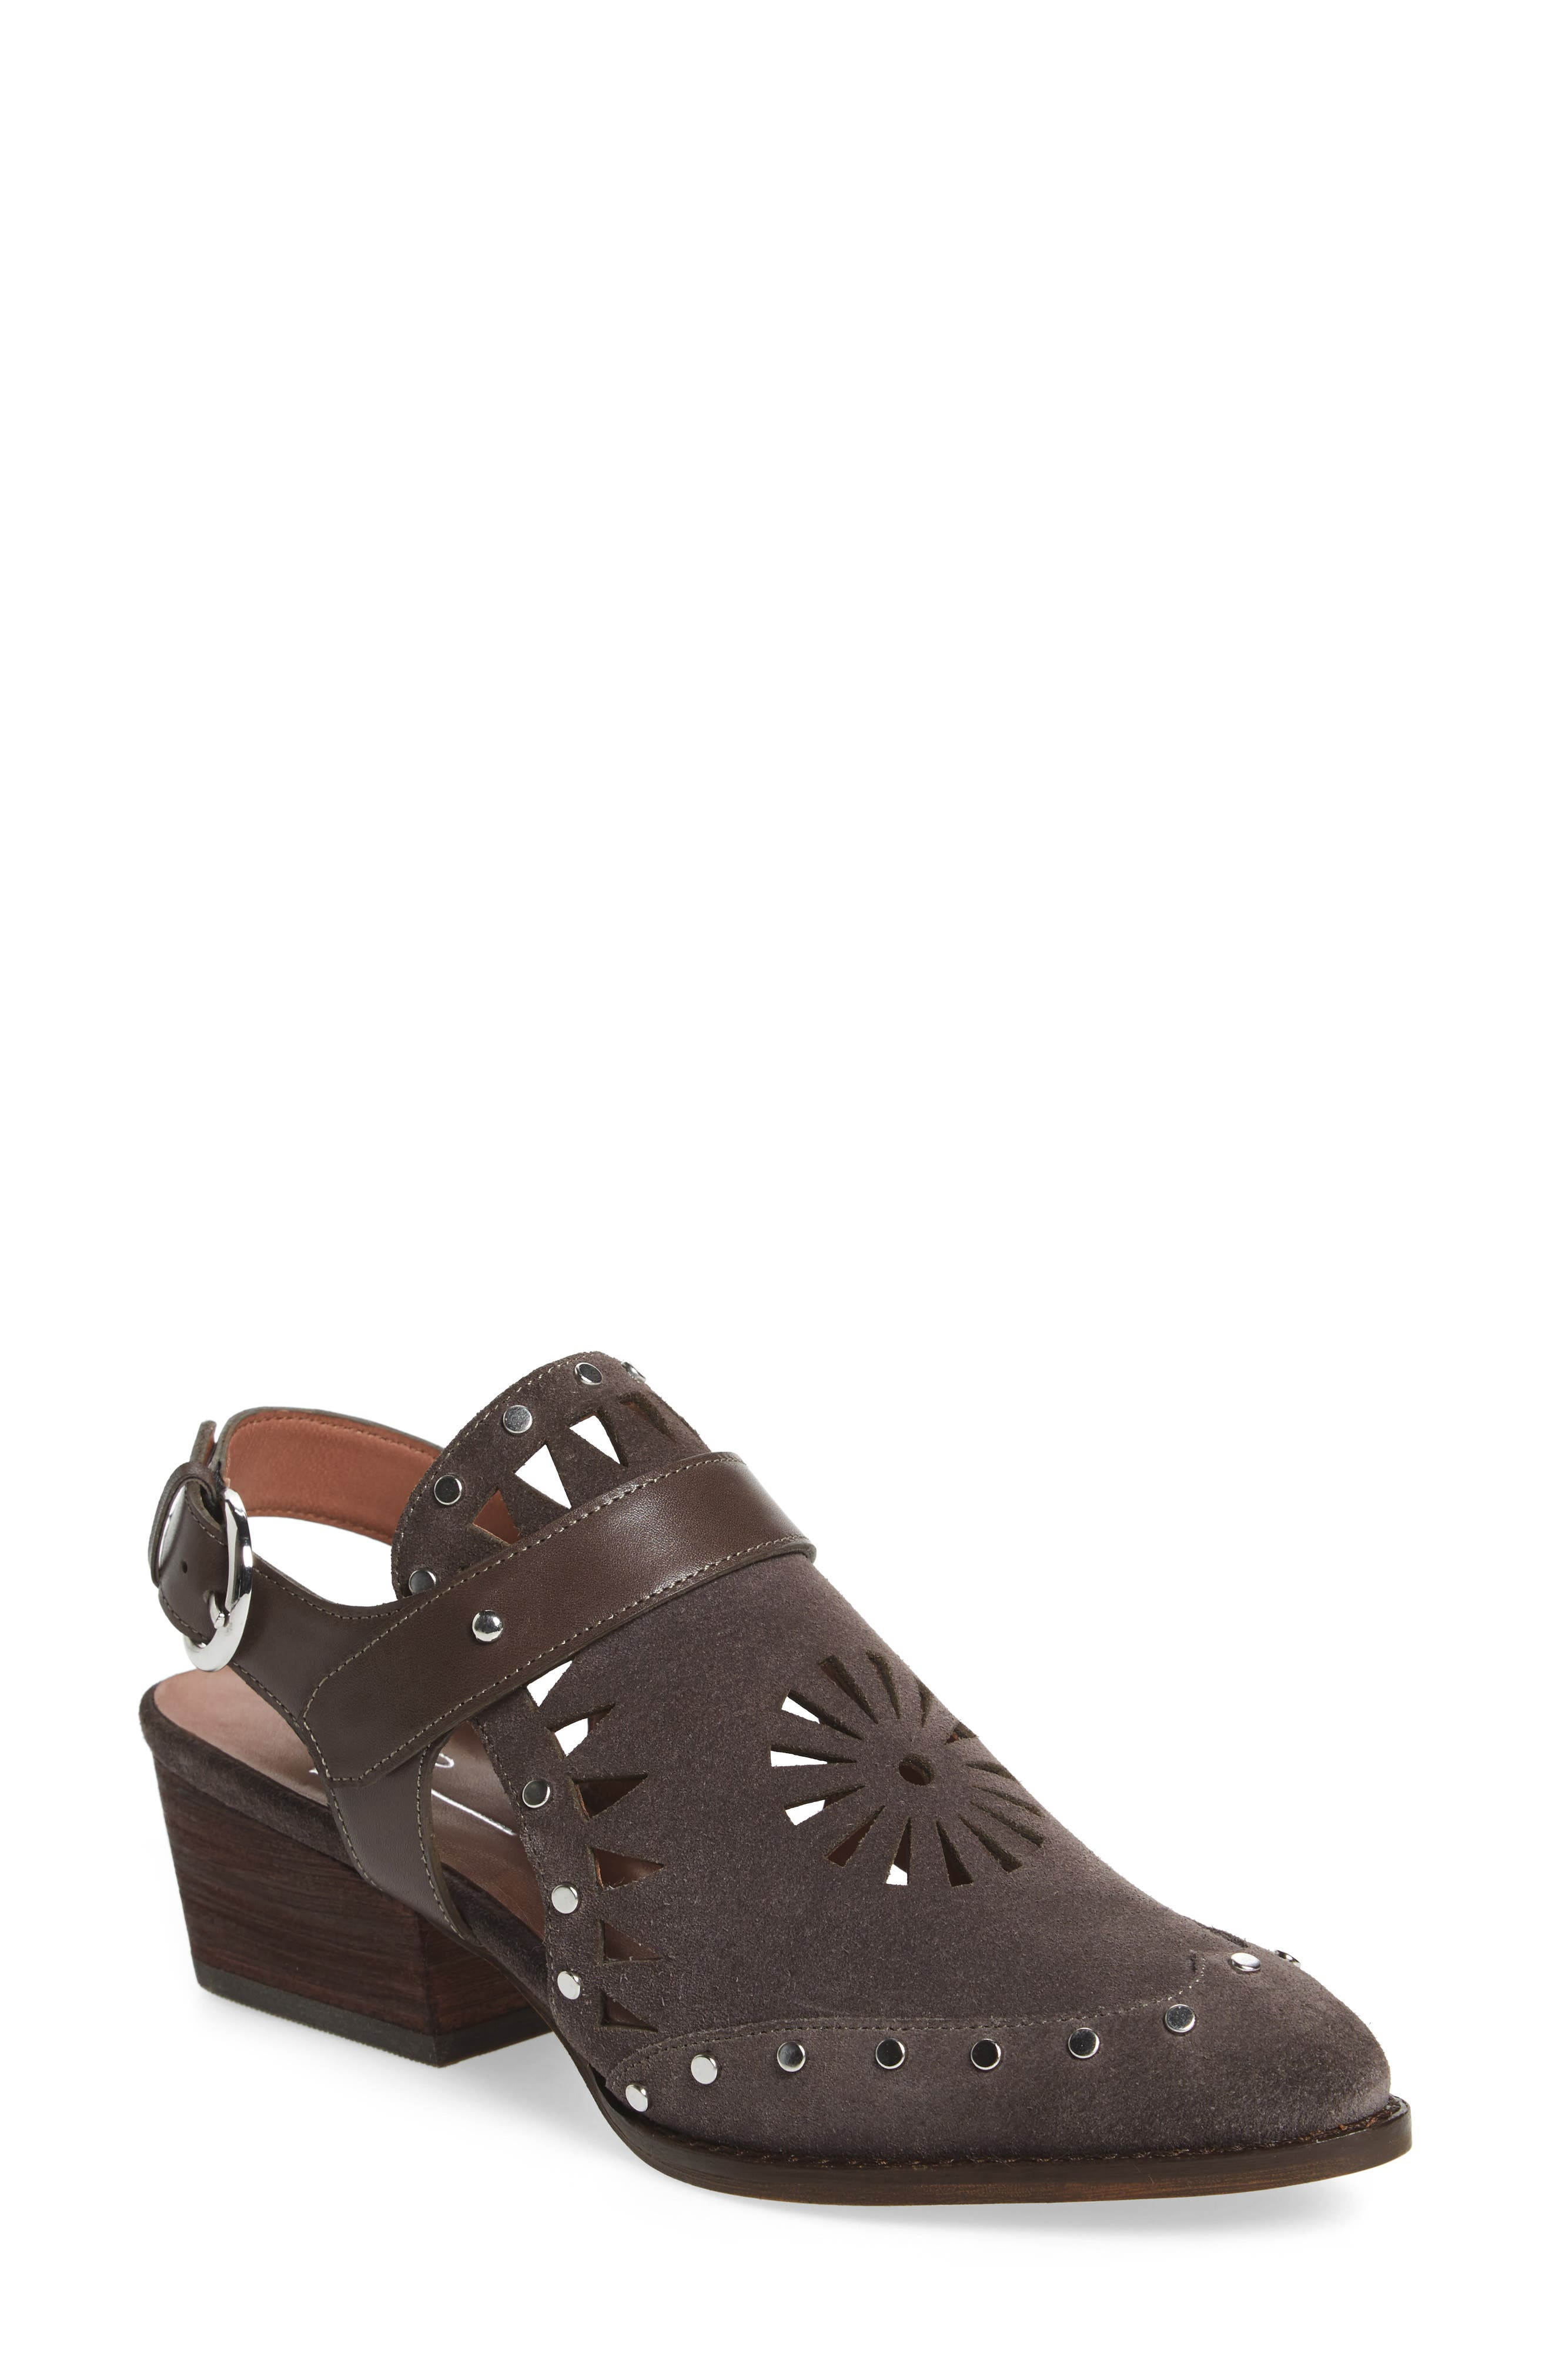 Whitney Bootie,                         Main,                         color, Ash Suede